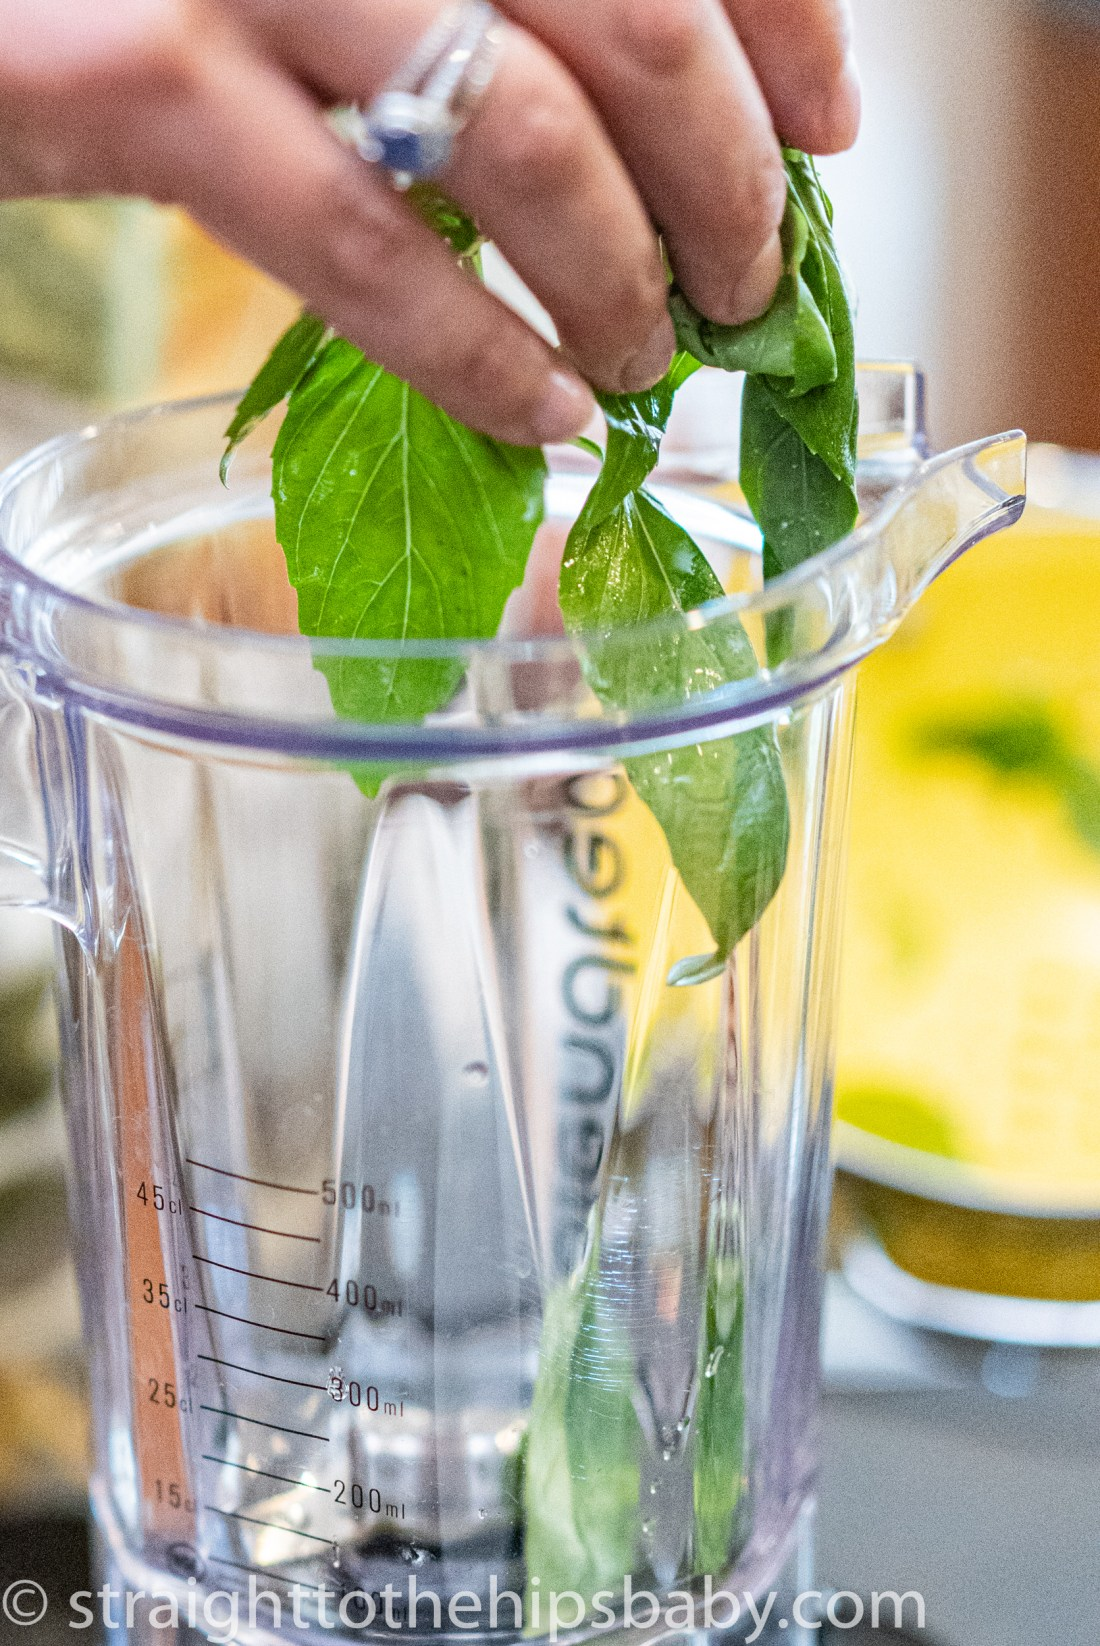 placing basil leaves into a blend for the creamy basil dressing